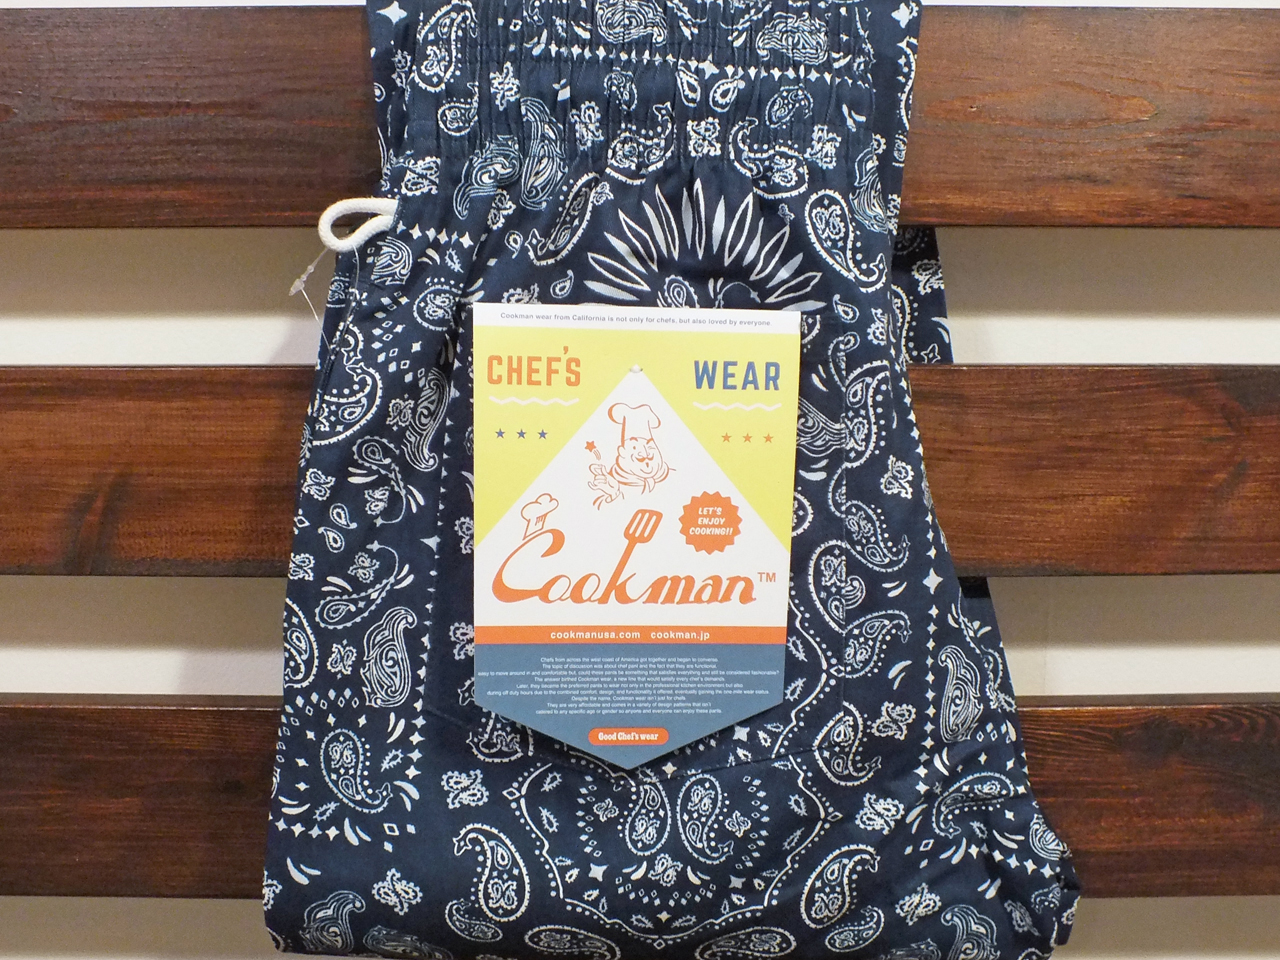 COOKMAN LOS ANGELES CALIFORNIA CHEF PANTS PAISLEY NAVY